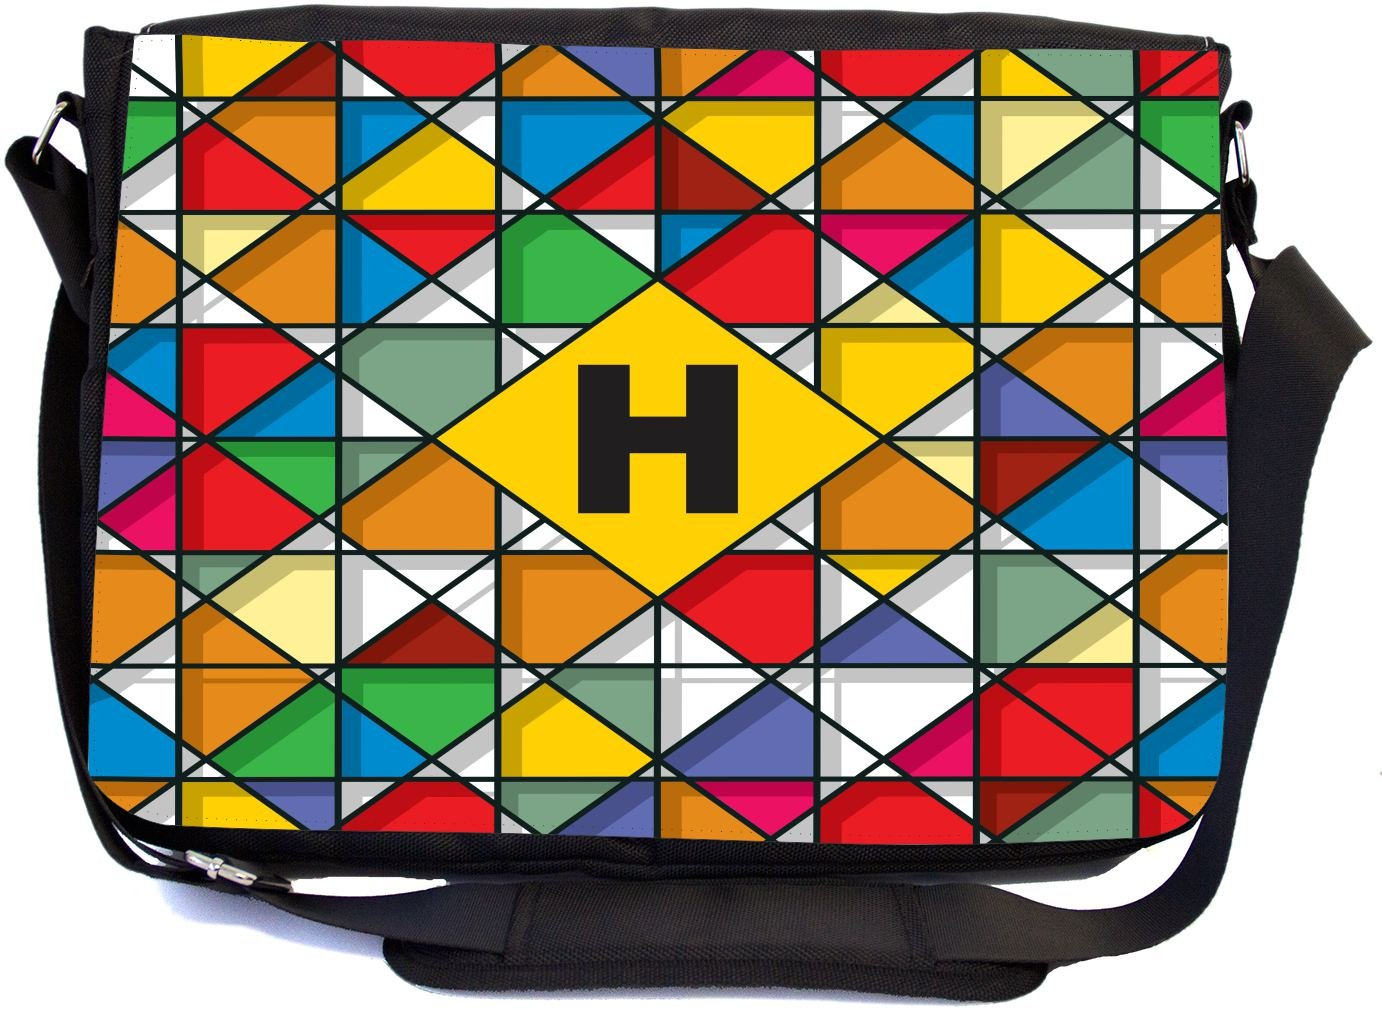 Rikki Knight Letter H Monogram Vibrant Colors Stained Glass Design Design Multifunctional Messenger Bag - School Bag - Laptop Bag - Includes Matching Compact Mirror